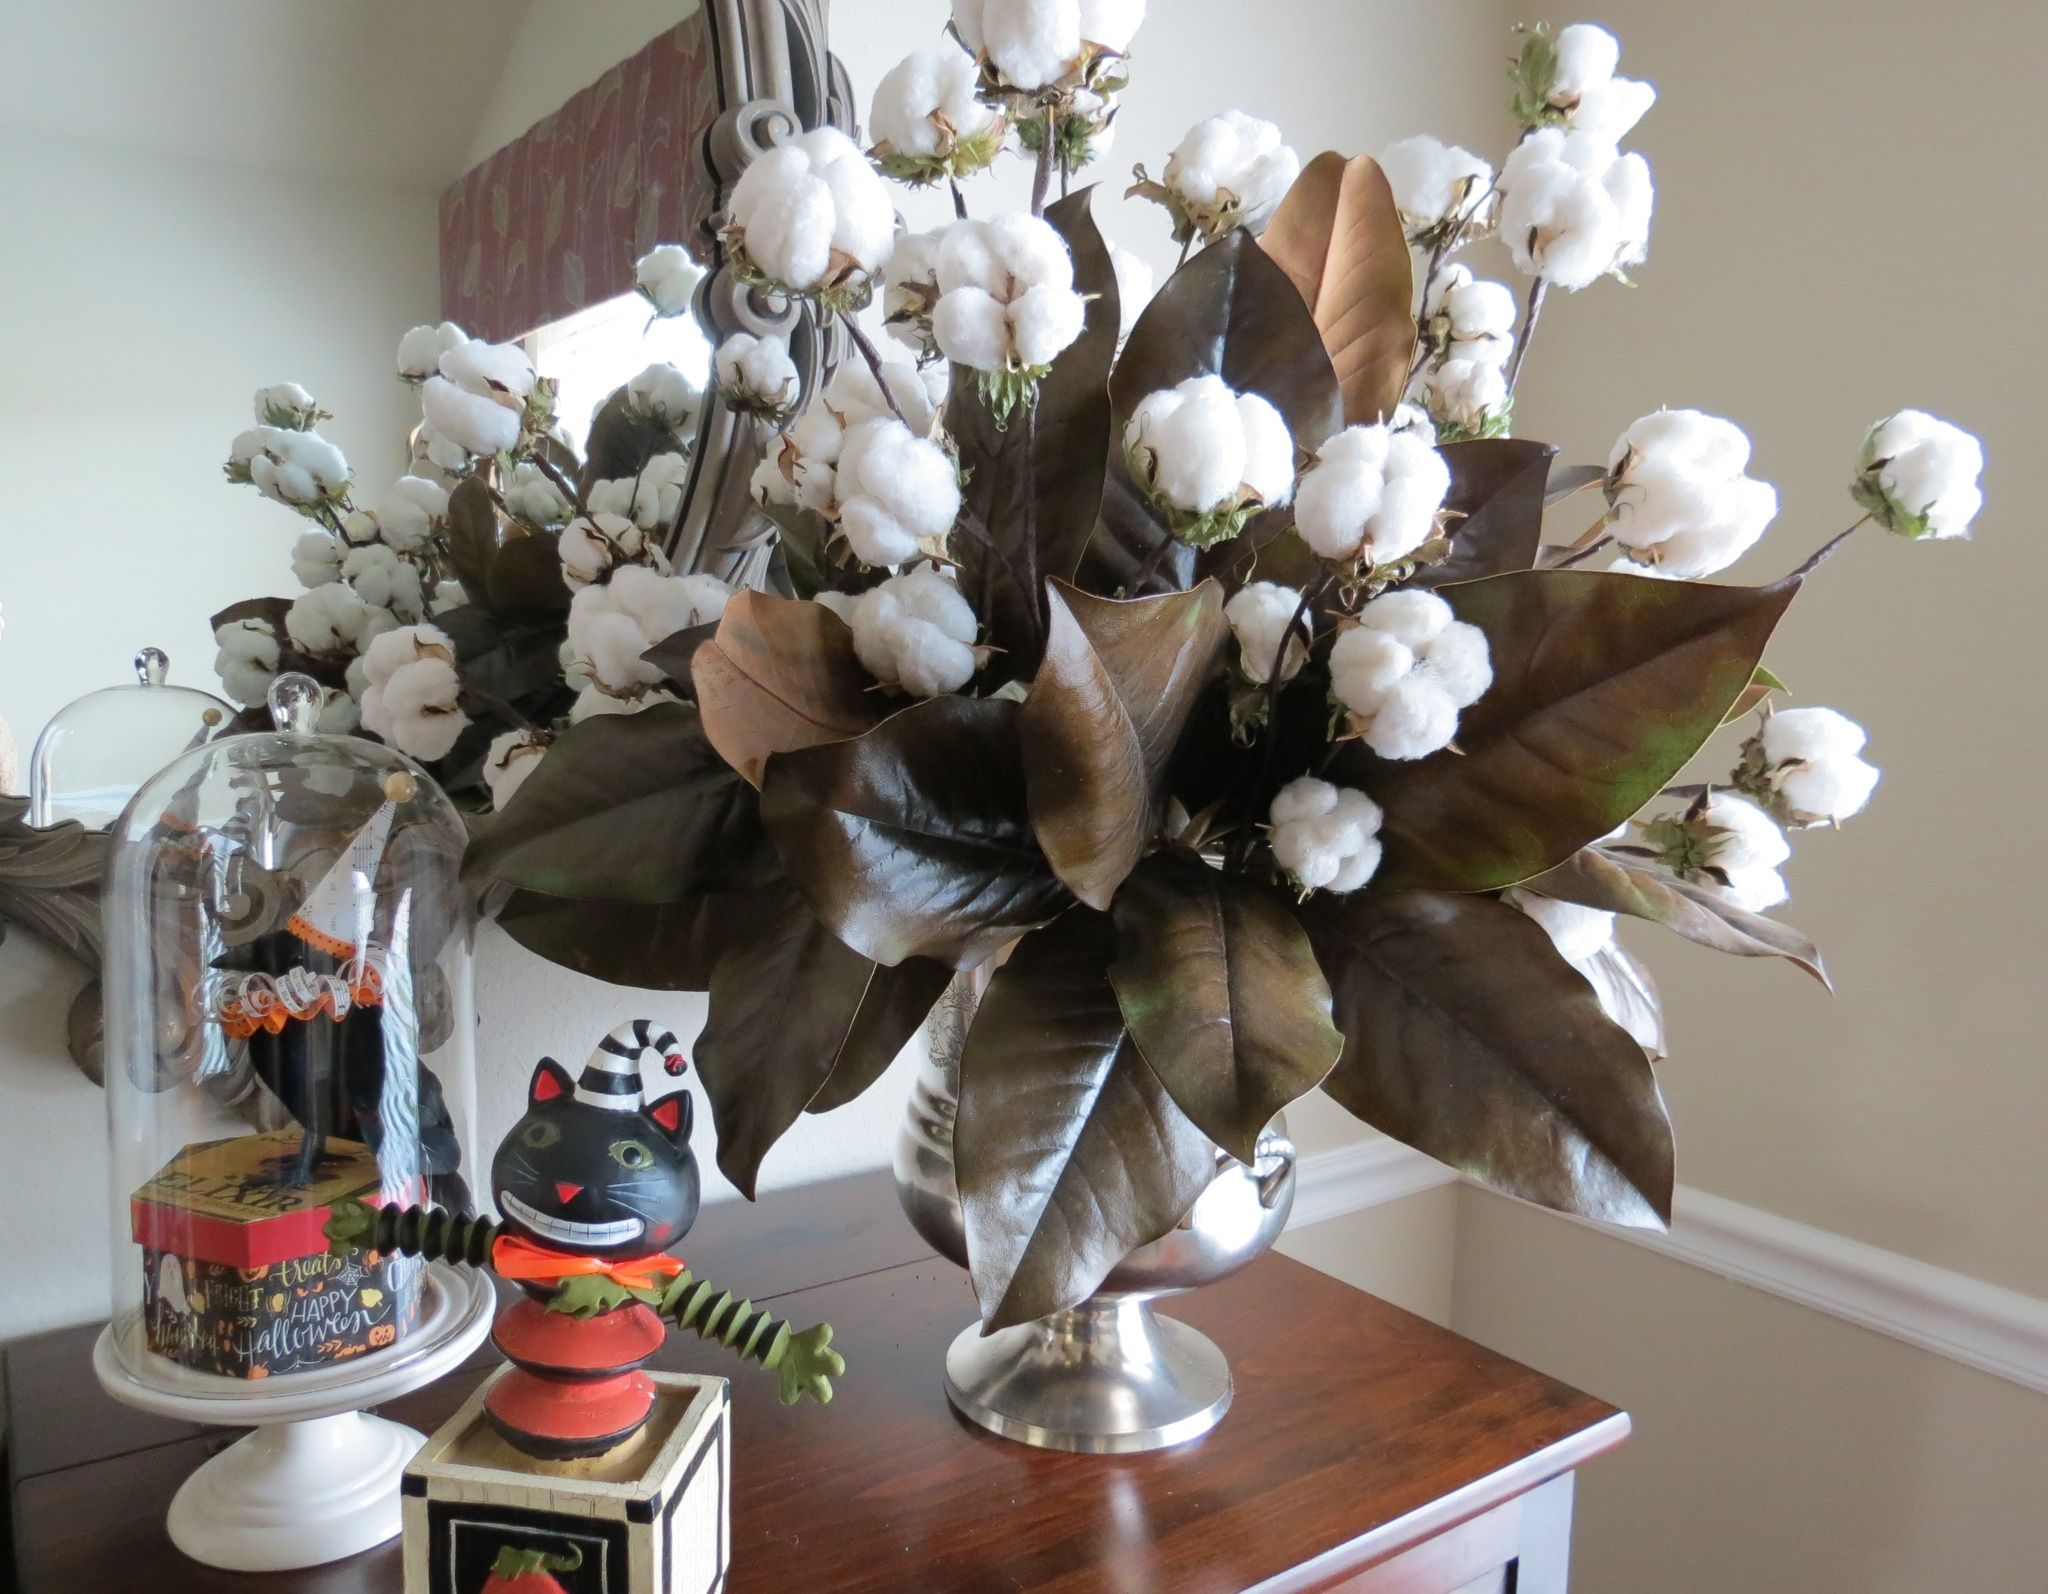 I Just Love Natural Accents We Grew The Cotton Ourselves And Preserved The Magnolia Branches With Glycerine Took A Whole Seas Cotton Decor Decor Fall Decor